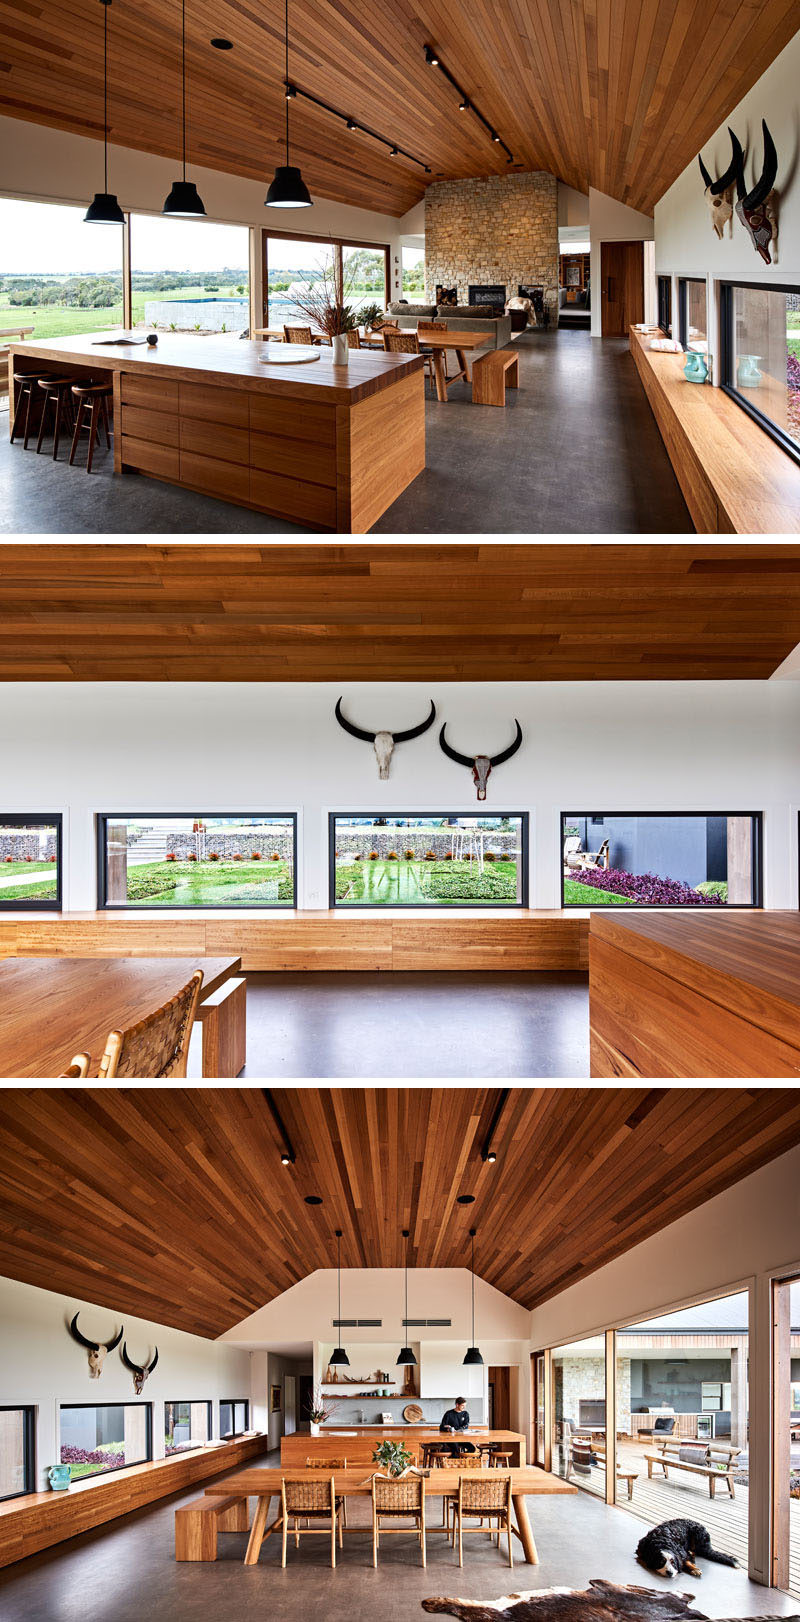 Inside this modern ranch-inspired house, the main living area is open with a Cedar lined cathedral ceiling and due to the position of the house, large picture windows provide 180 degrees of views of the surrounding land. #InteriorDesign #CathedralCeiling #Windows